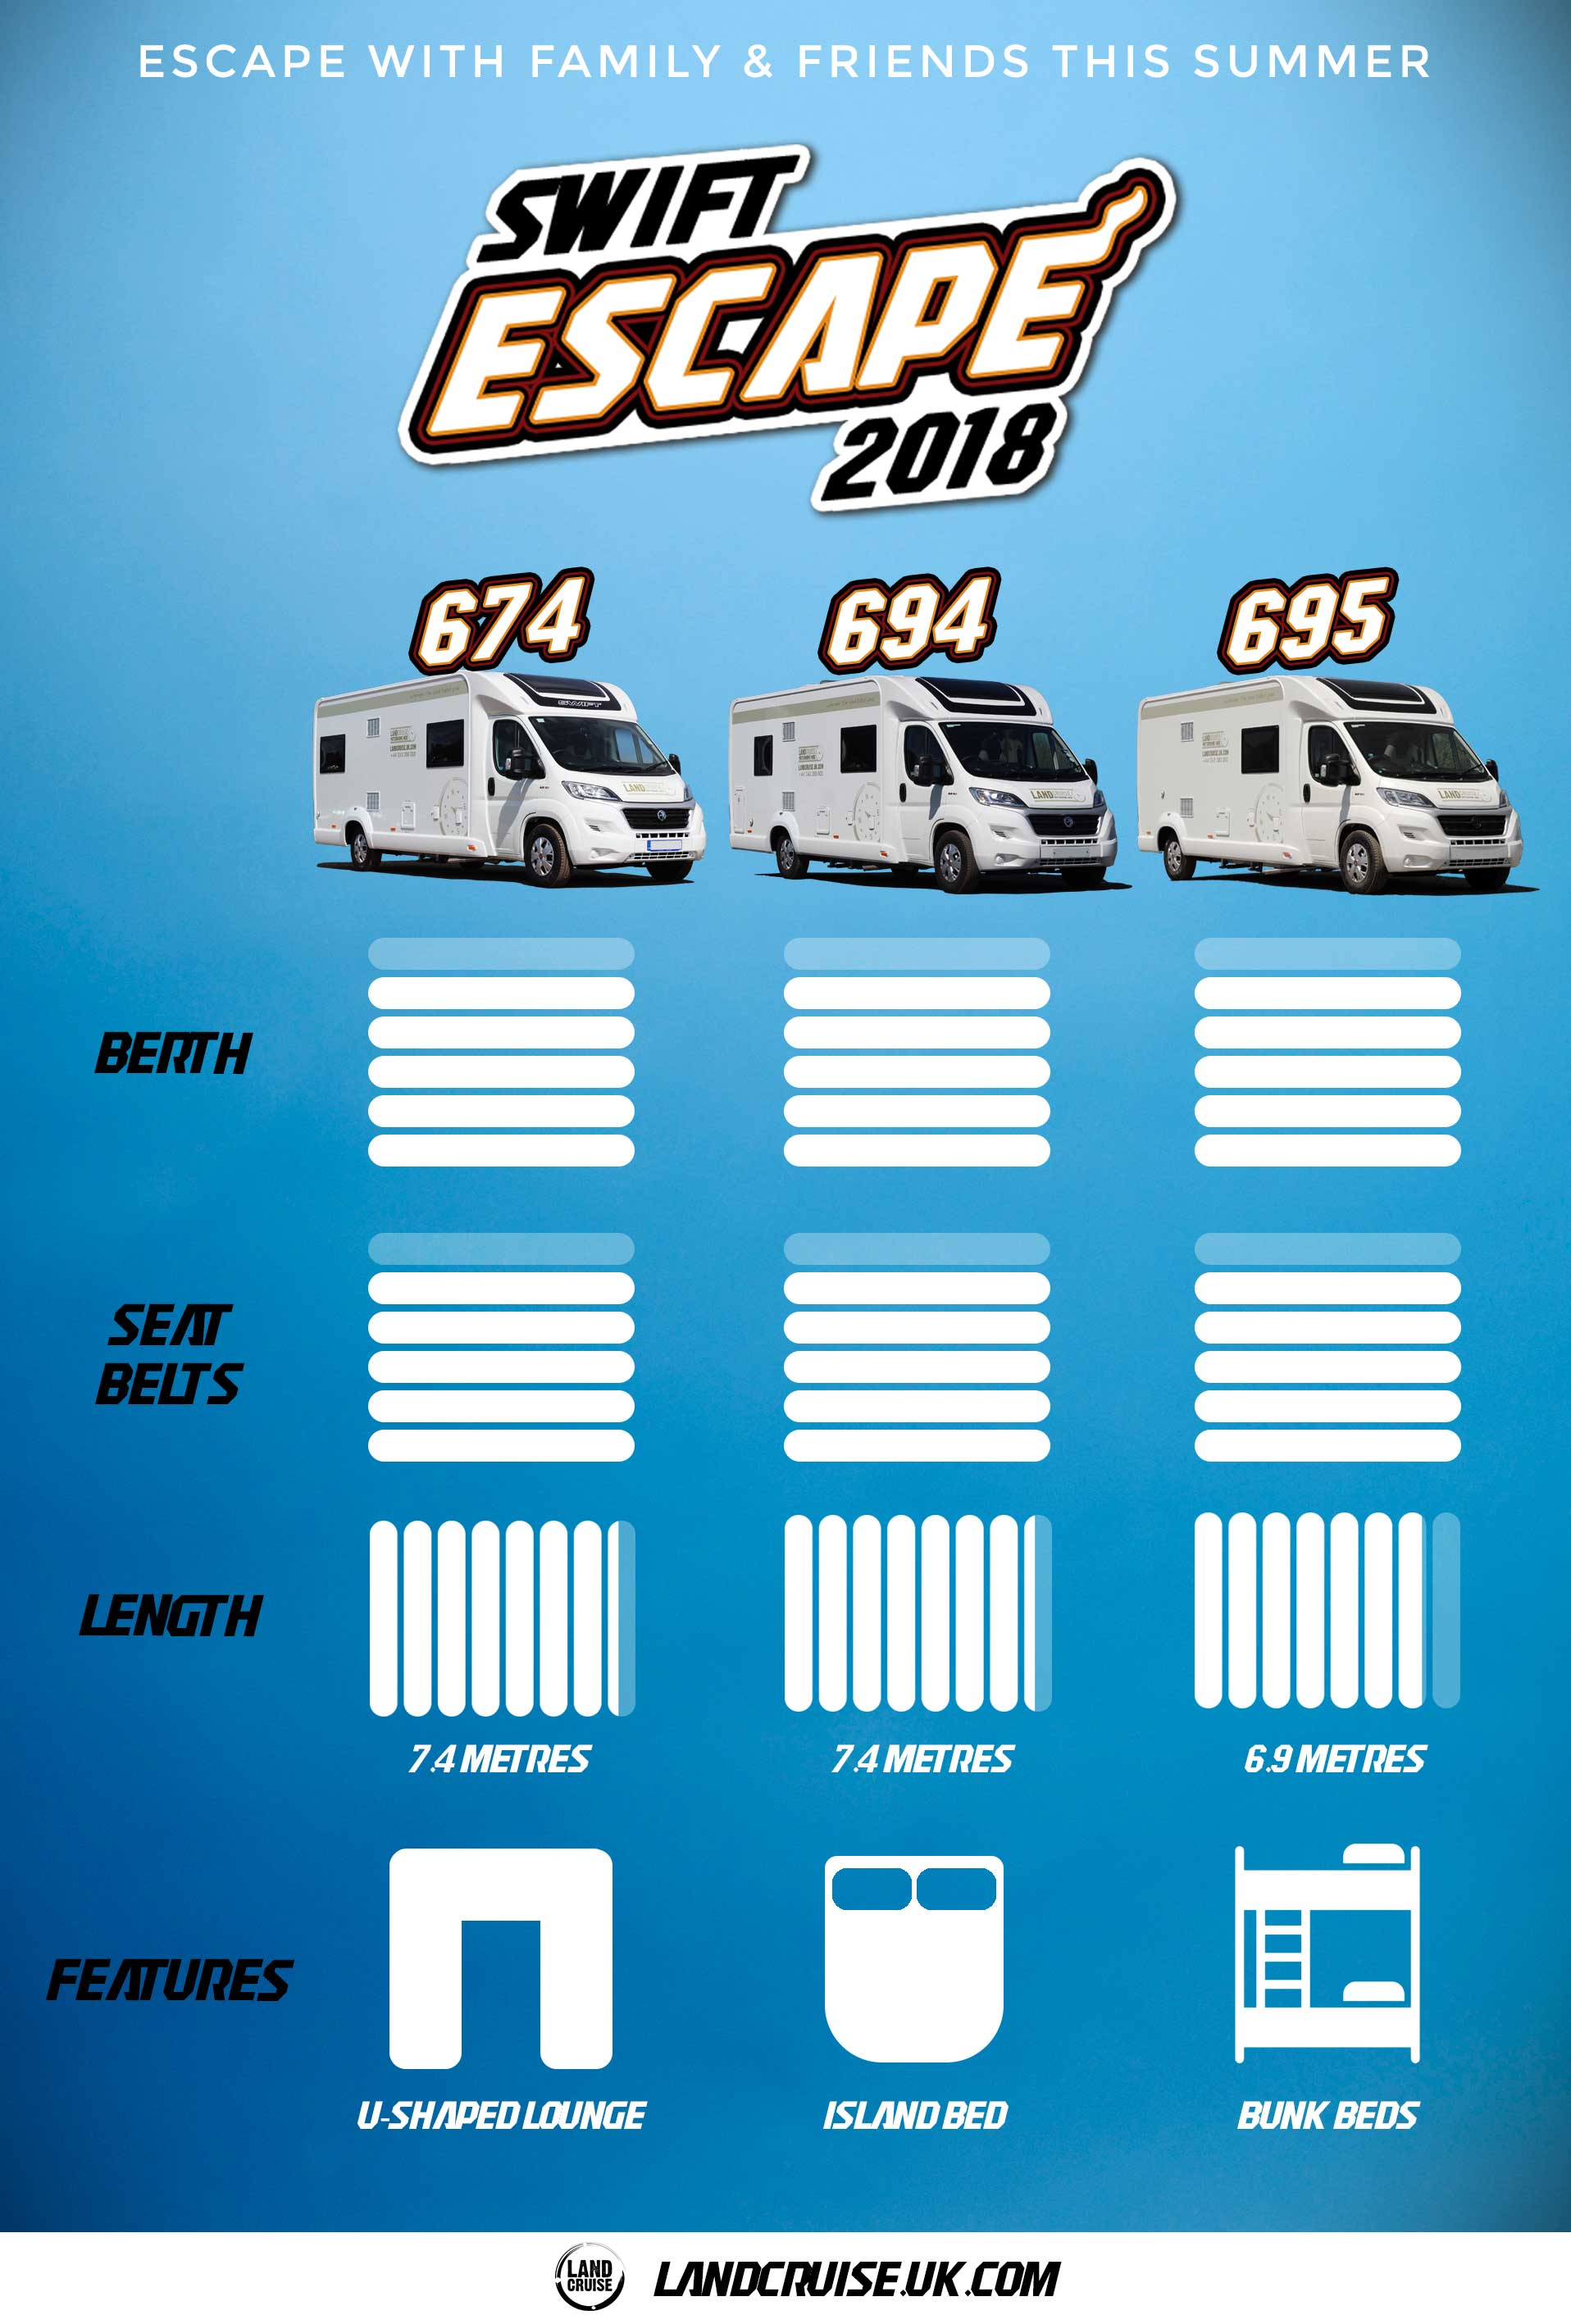 Swift Escape 674, 694, 695 comparison infographic. Escape with family and friends this summer